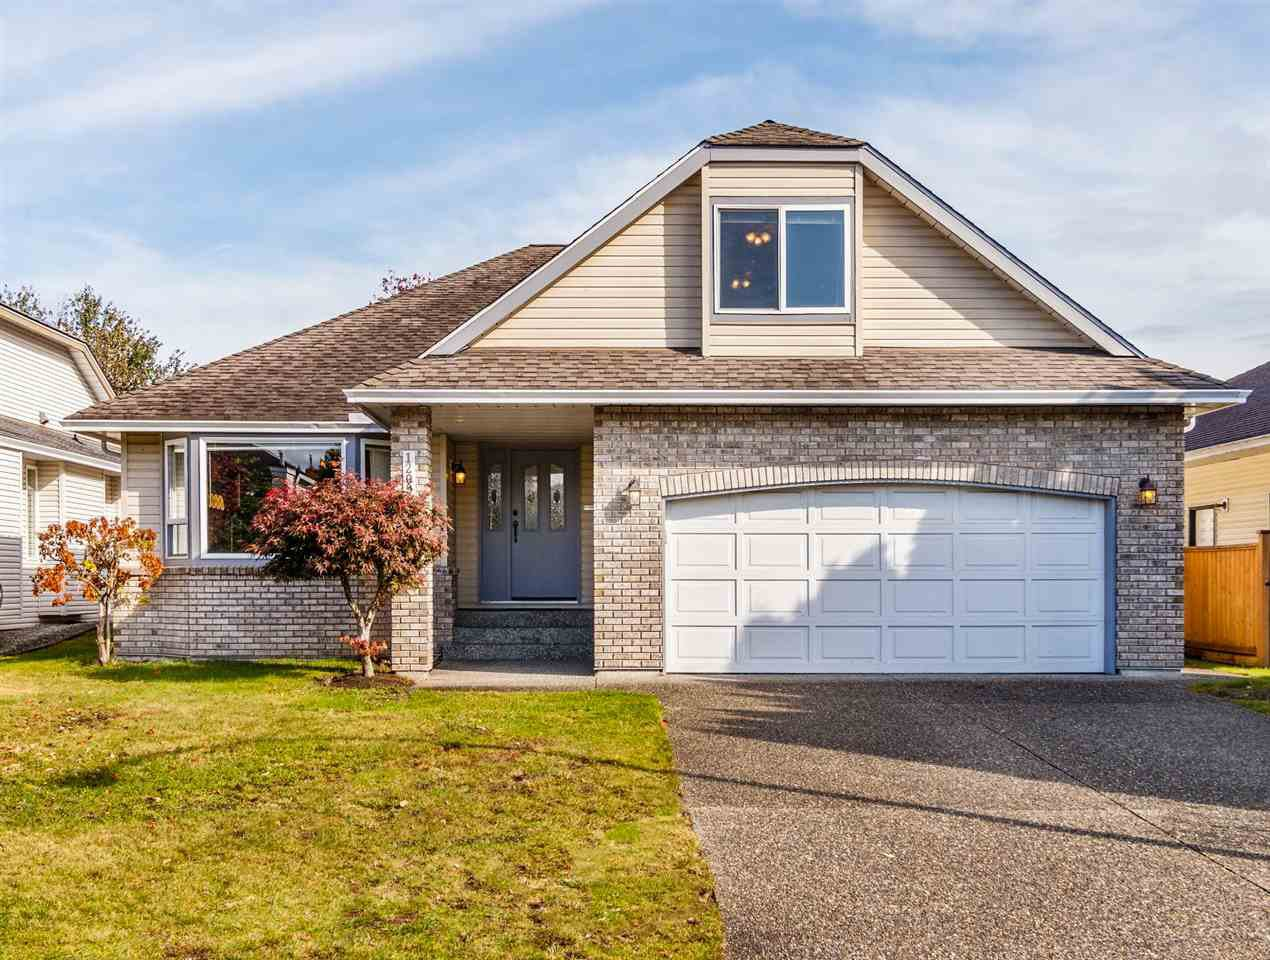 Main Photo: 12092 CHESTNUT Crescent in Pitt Meadows: Mid Meadows House for sale : MLS®# R2412110